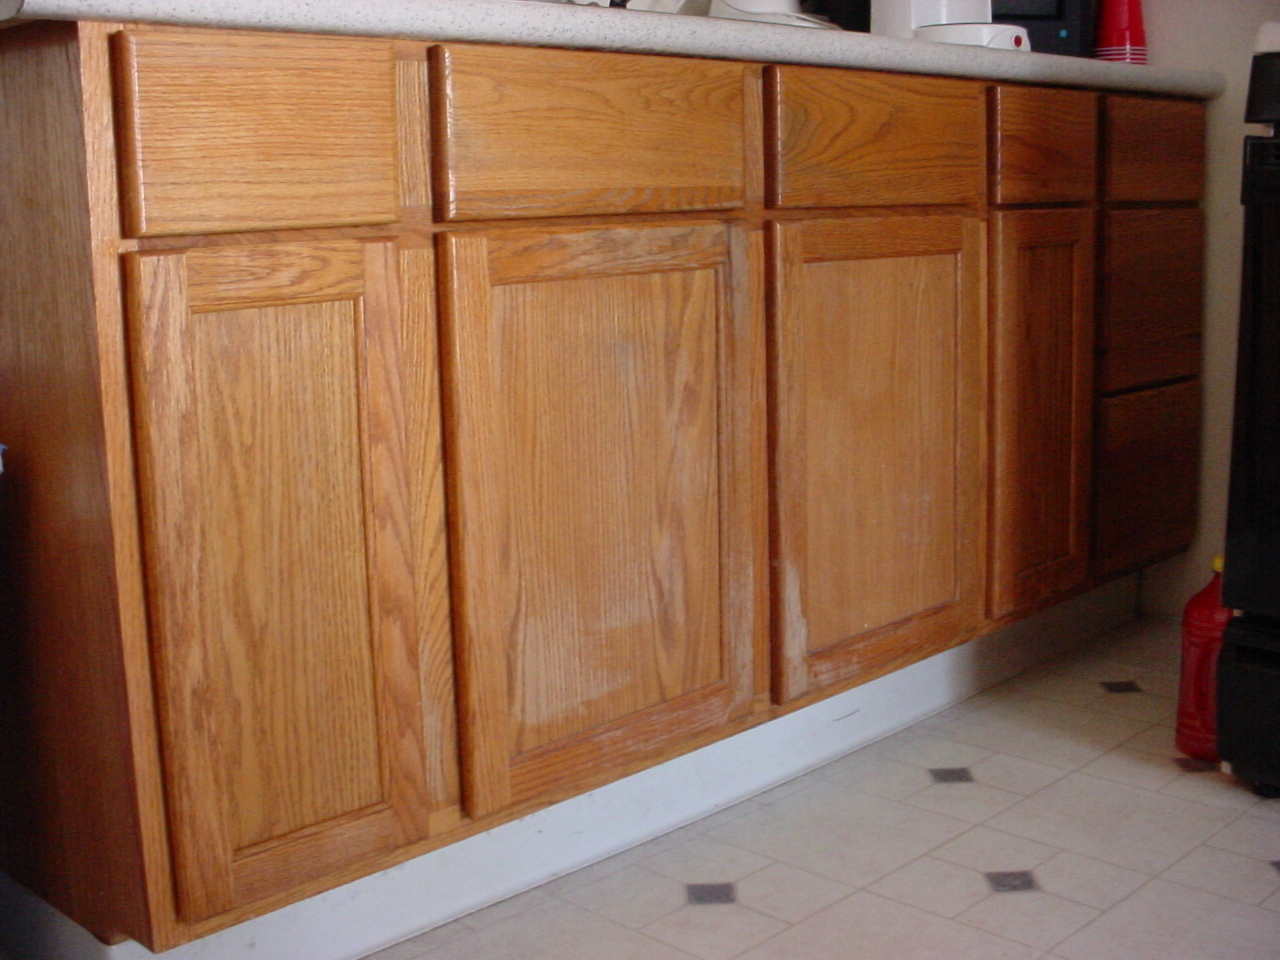 re varnish kitchen cabinets old kitchen cabinets Cabinets